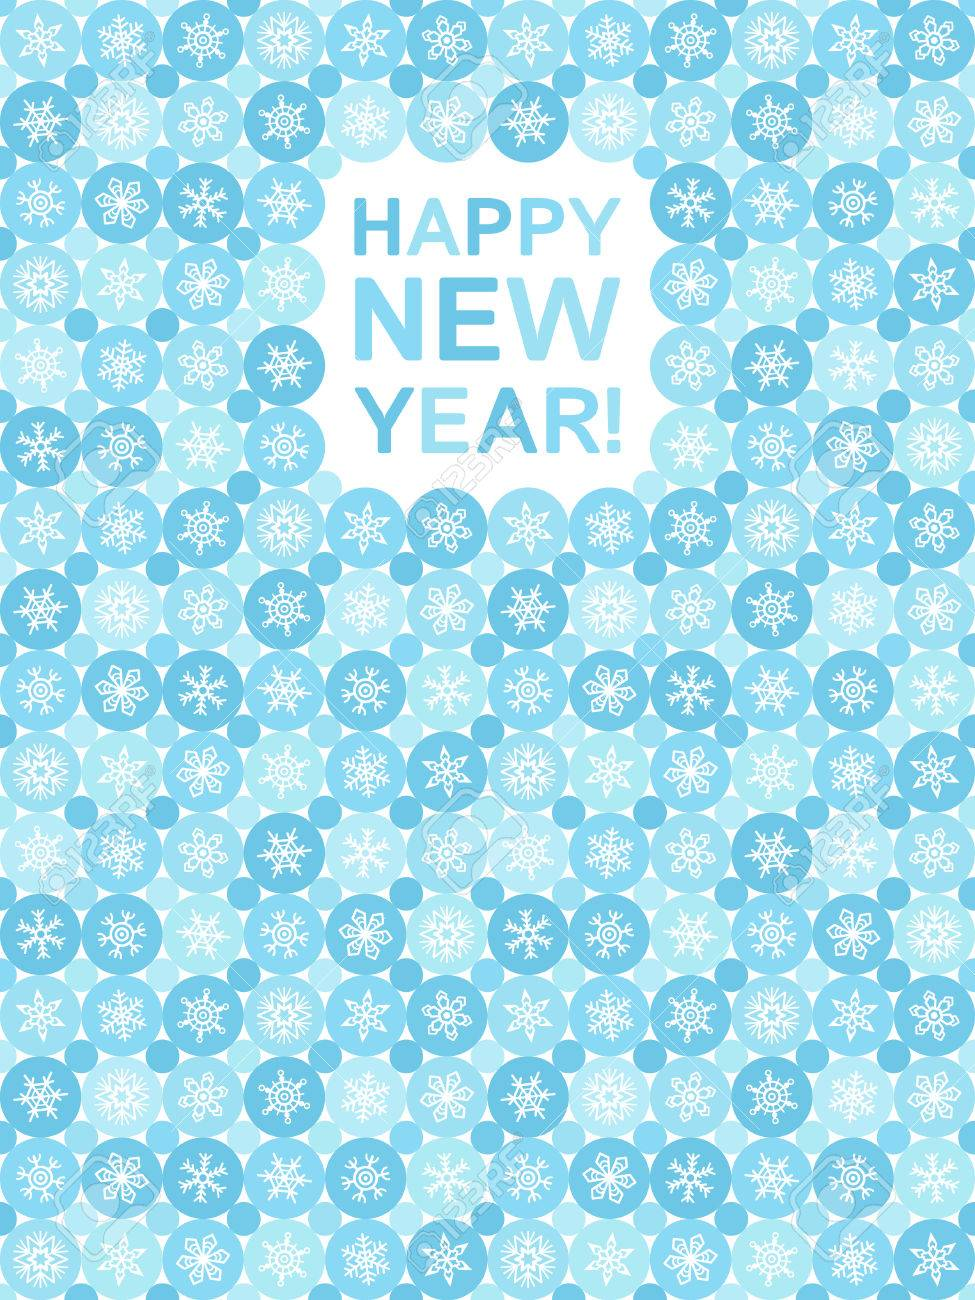 Simple Flat Design Happy New Year Greeting Card With Various